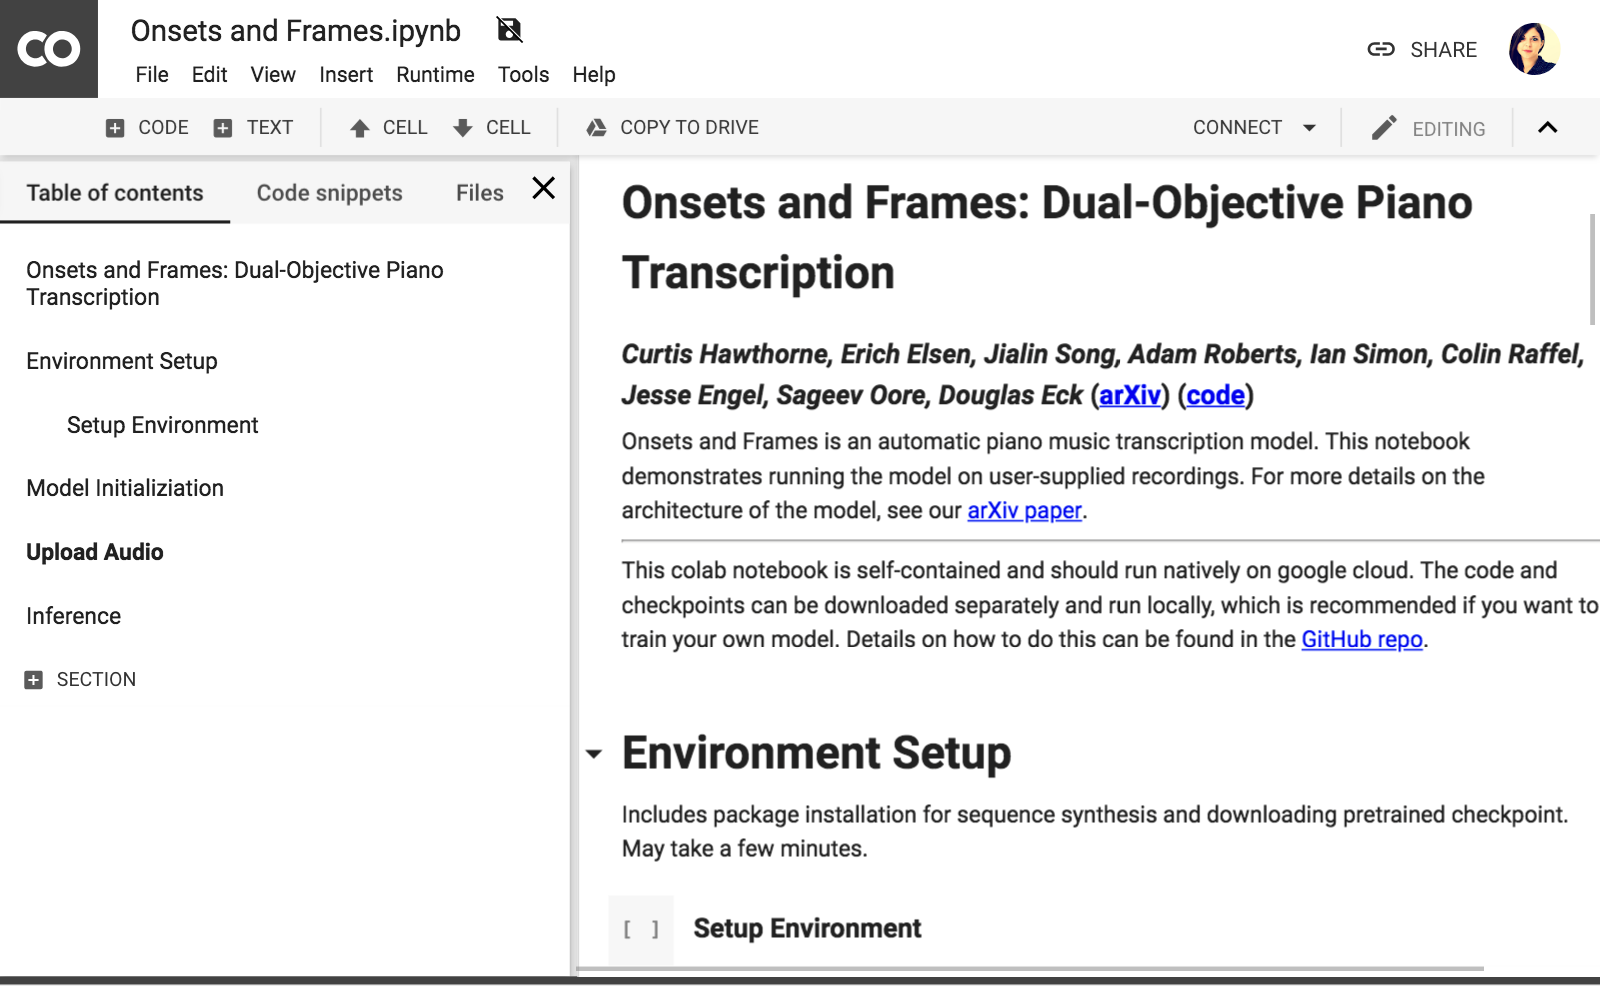 overview of Onsets and Frames